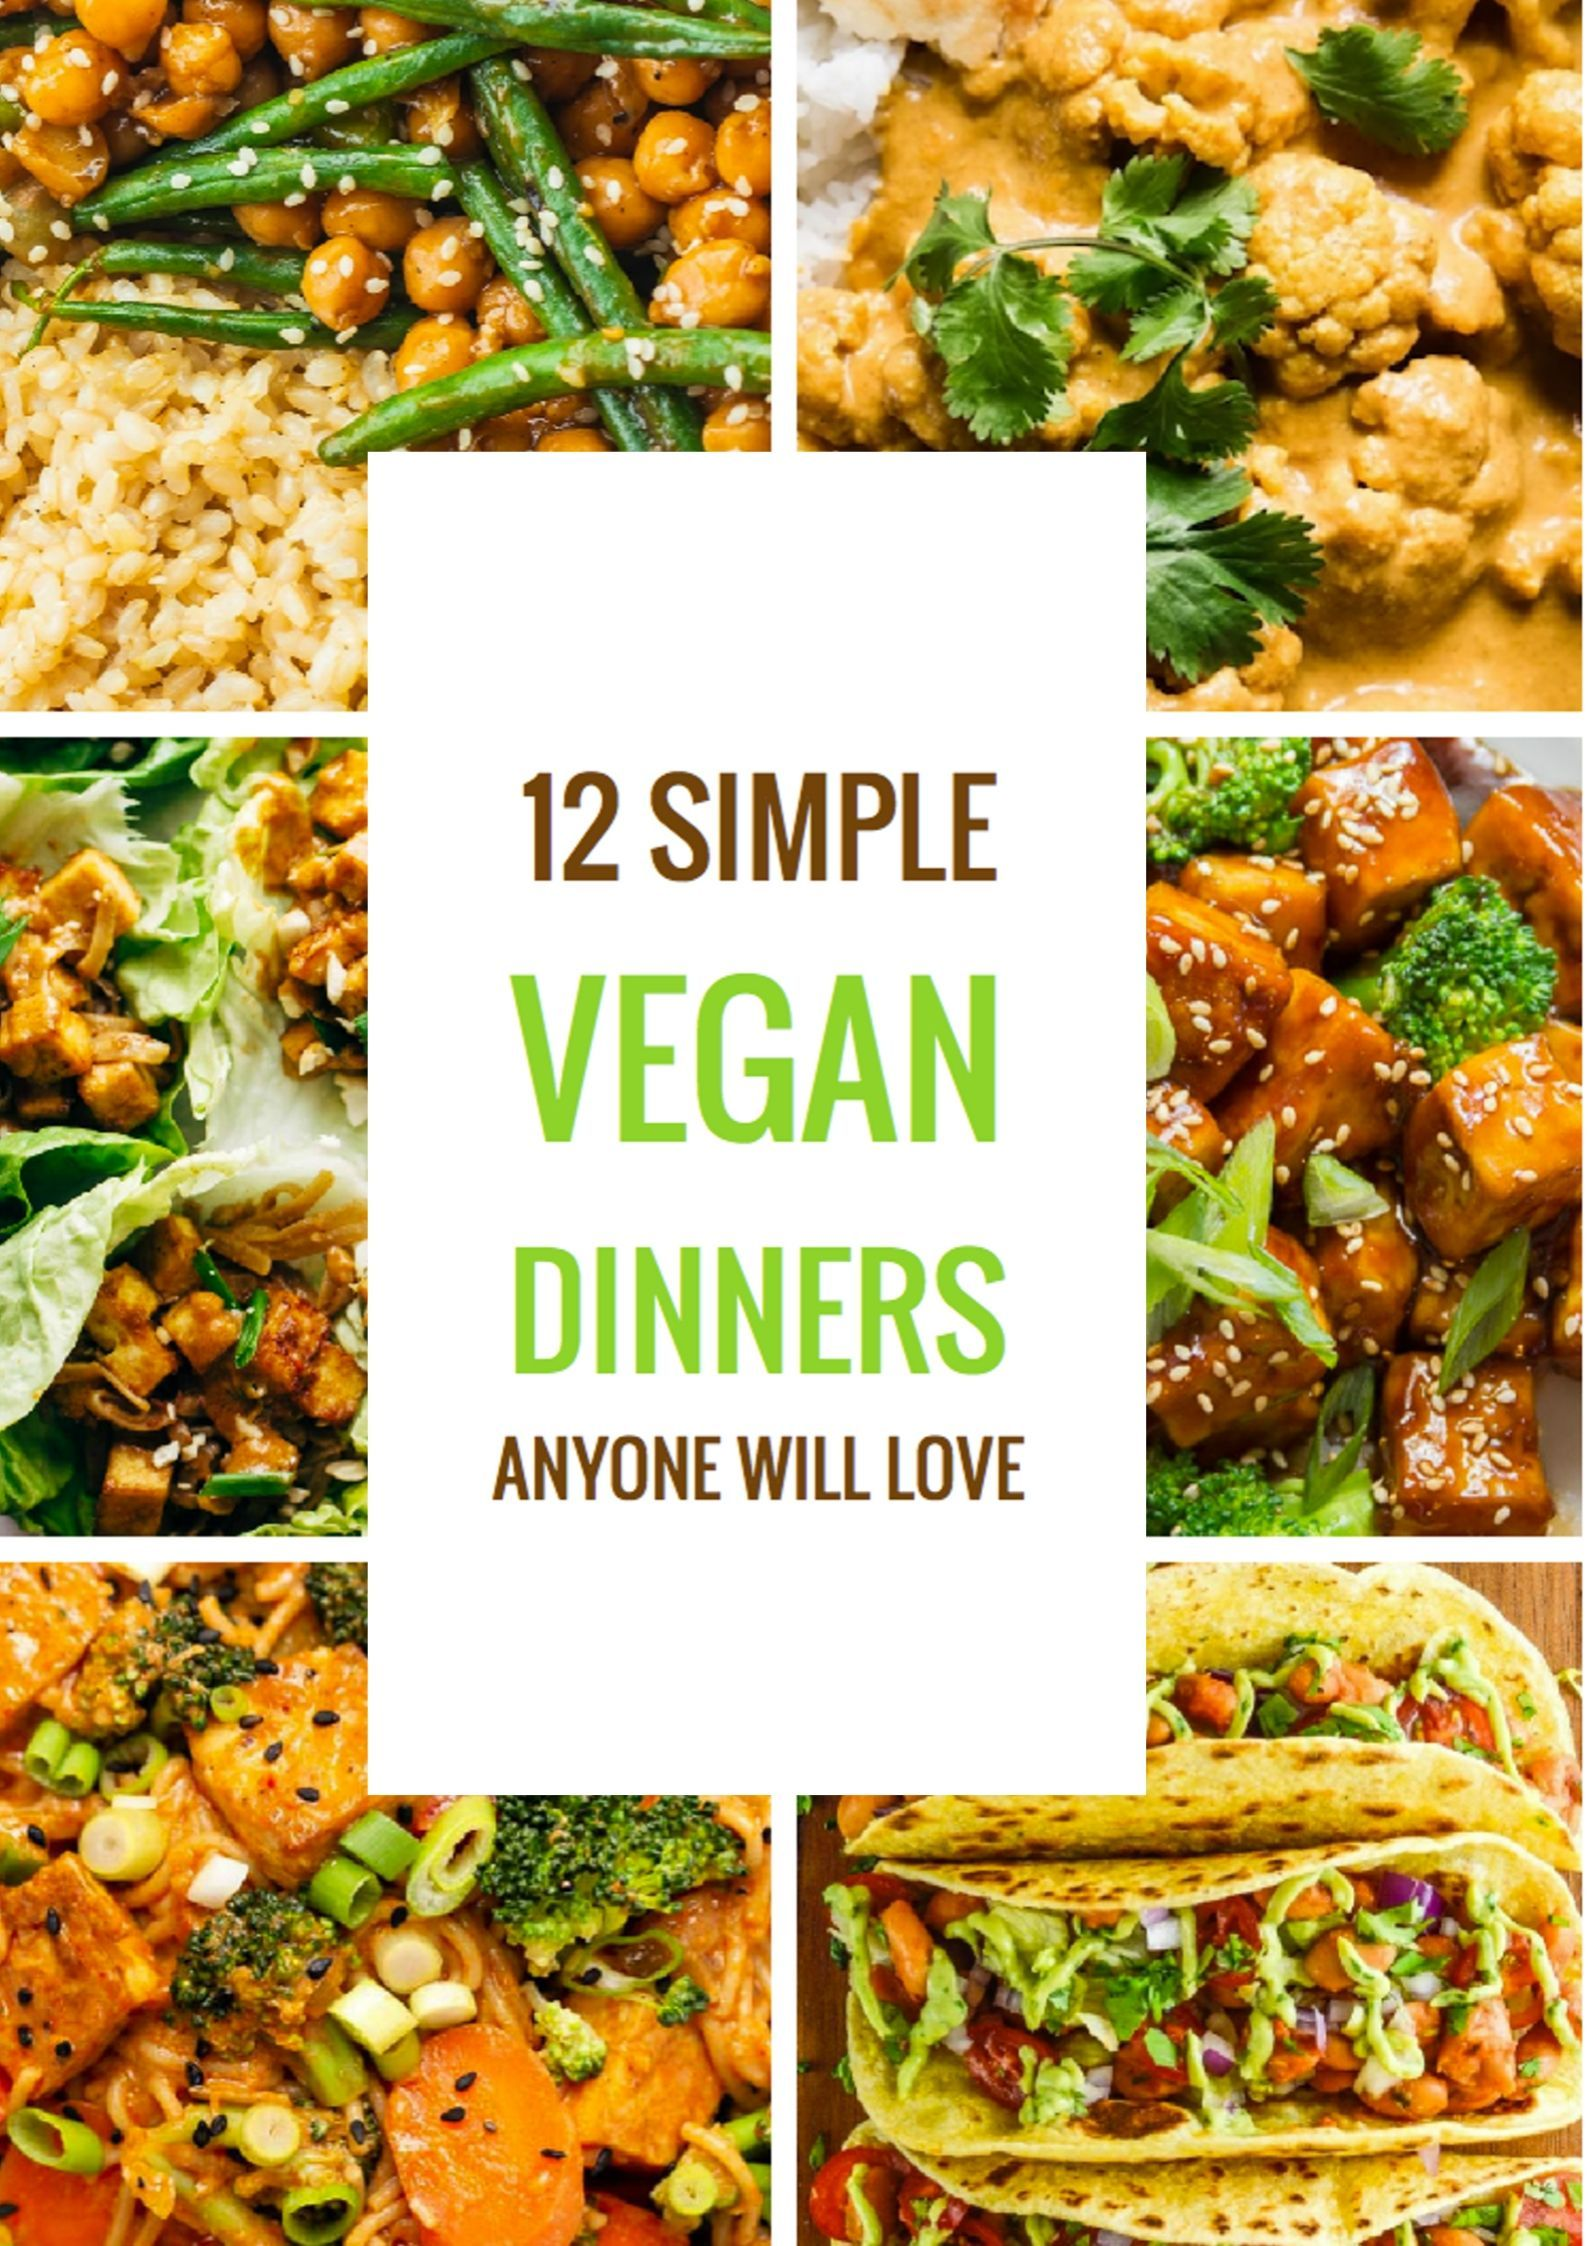 12 Simple Vegan Dinners Anyone Will Love Recipes Healthy